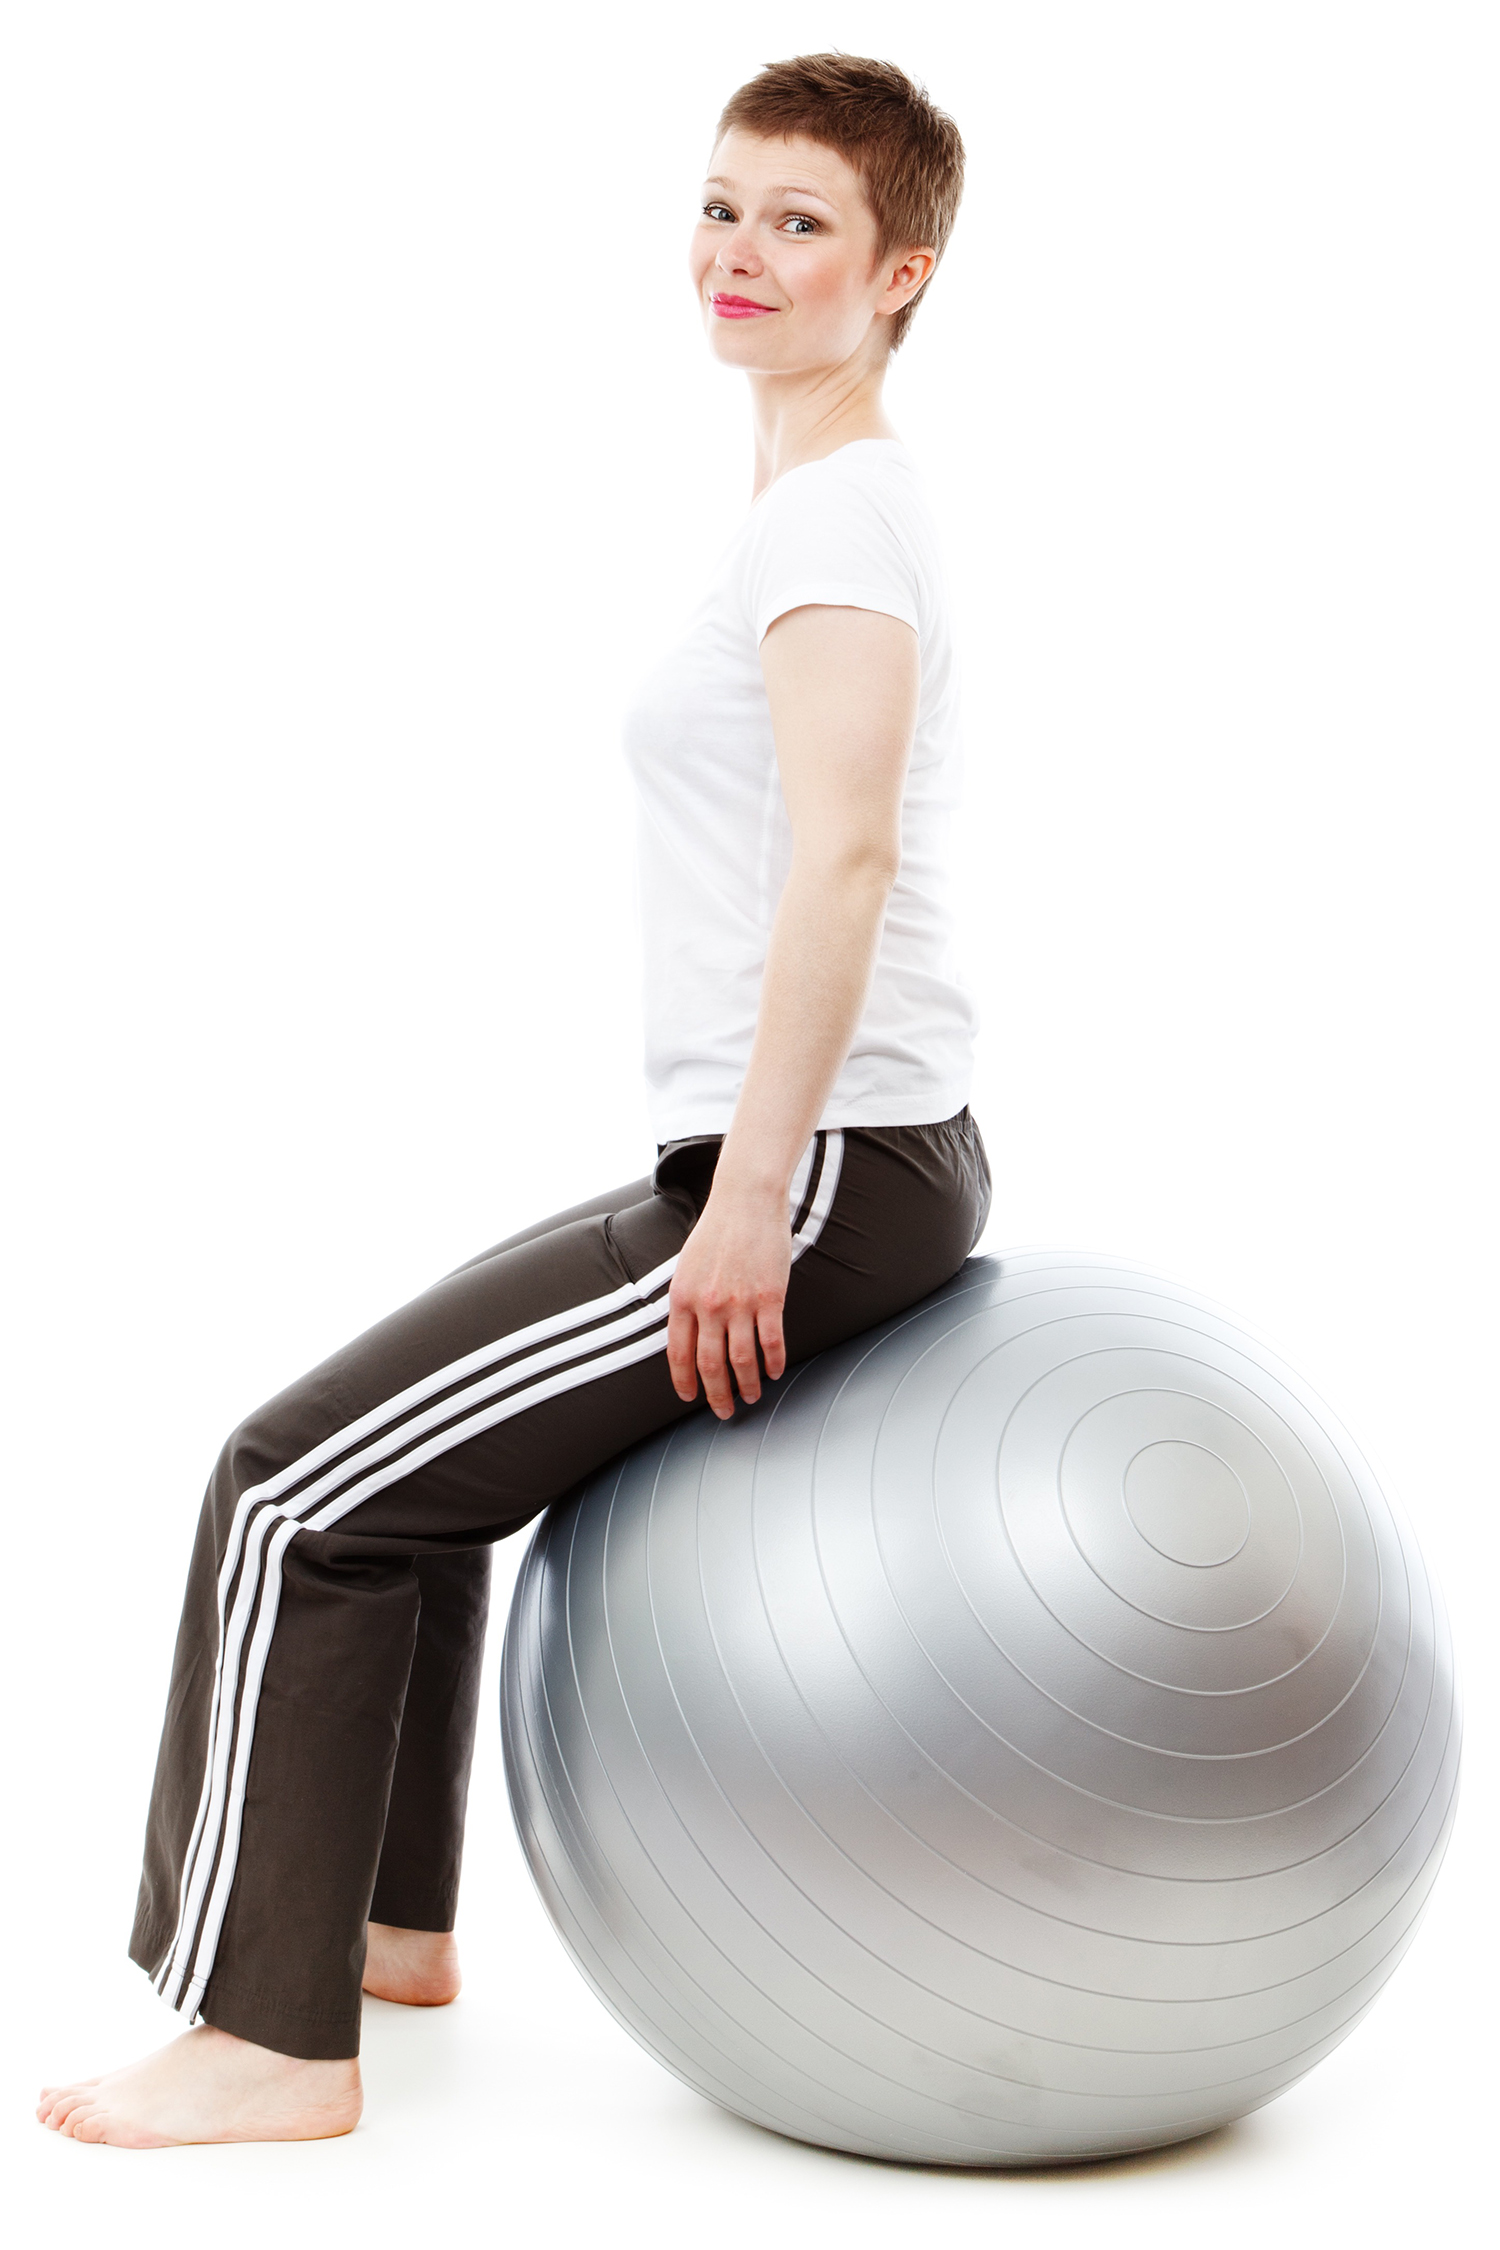 Woman With Upright Posture Sitting on Swiss Ball